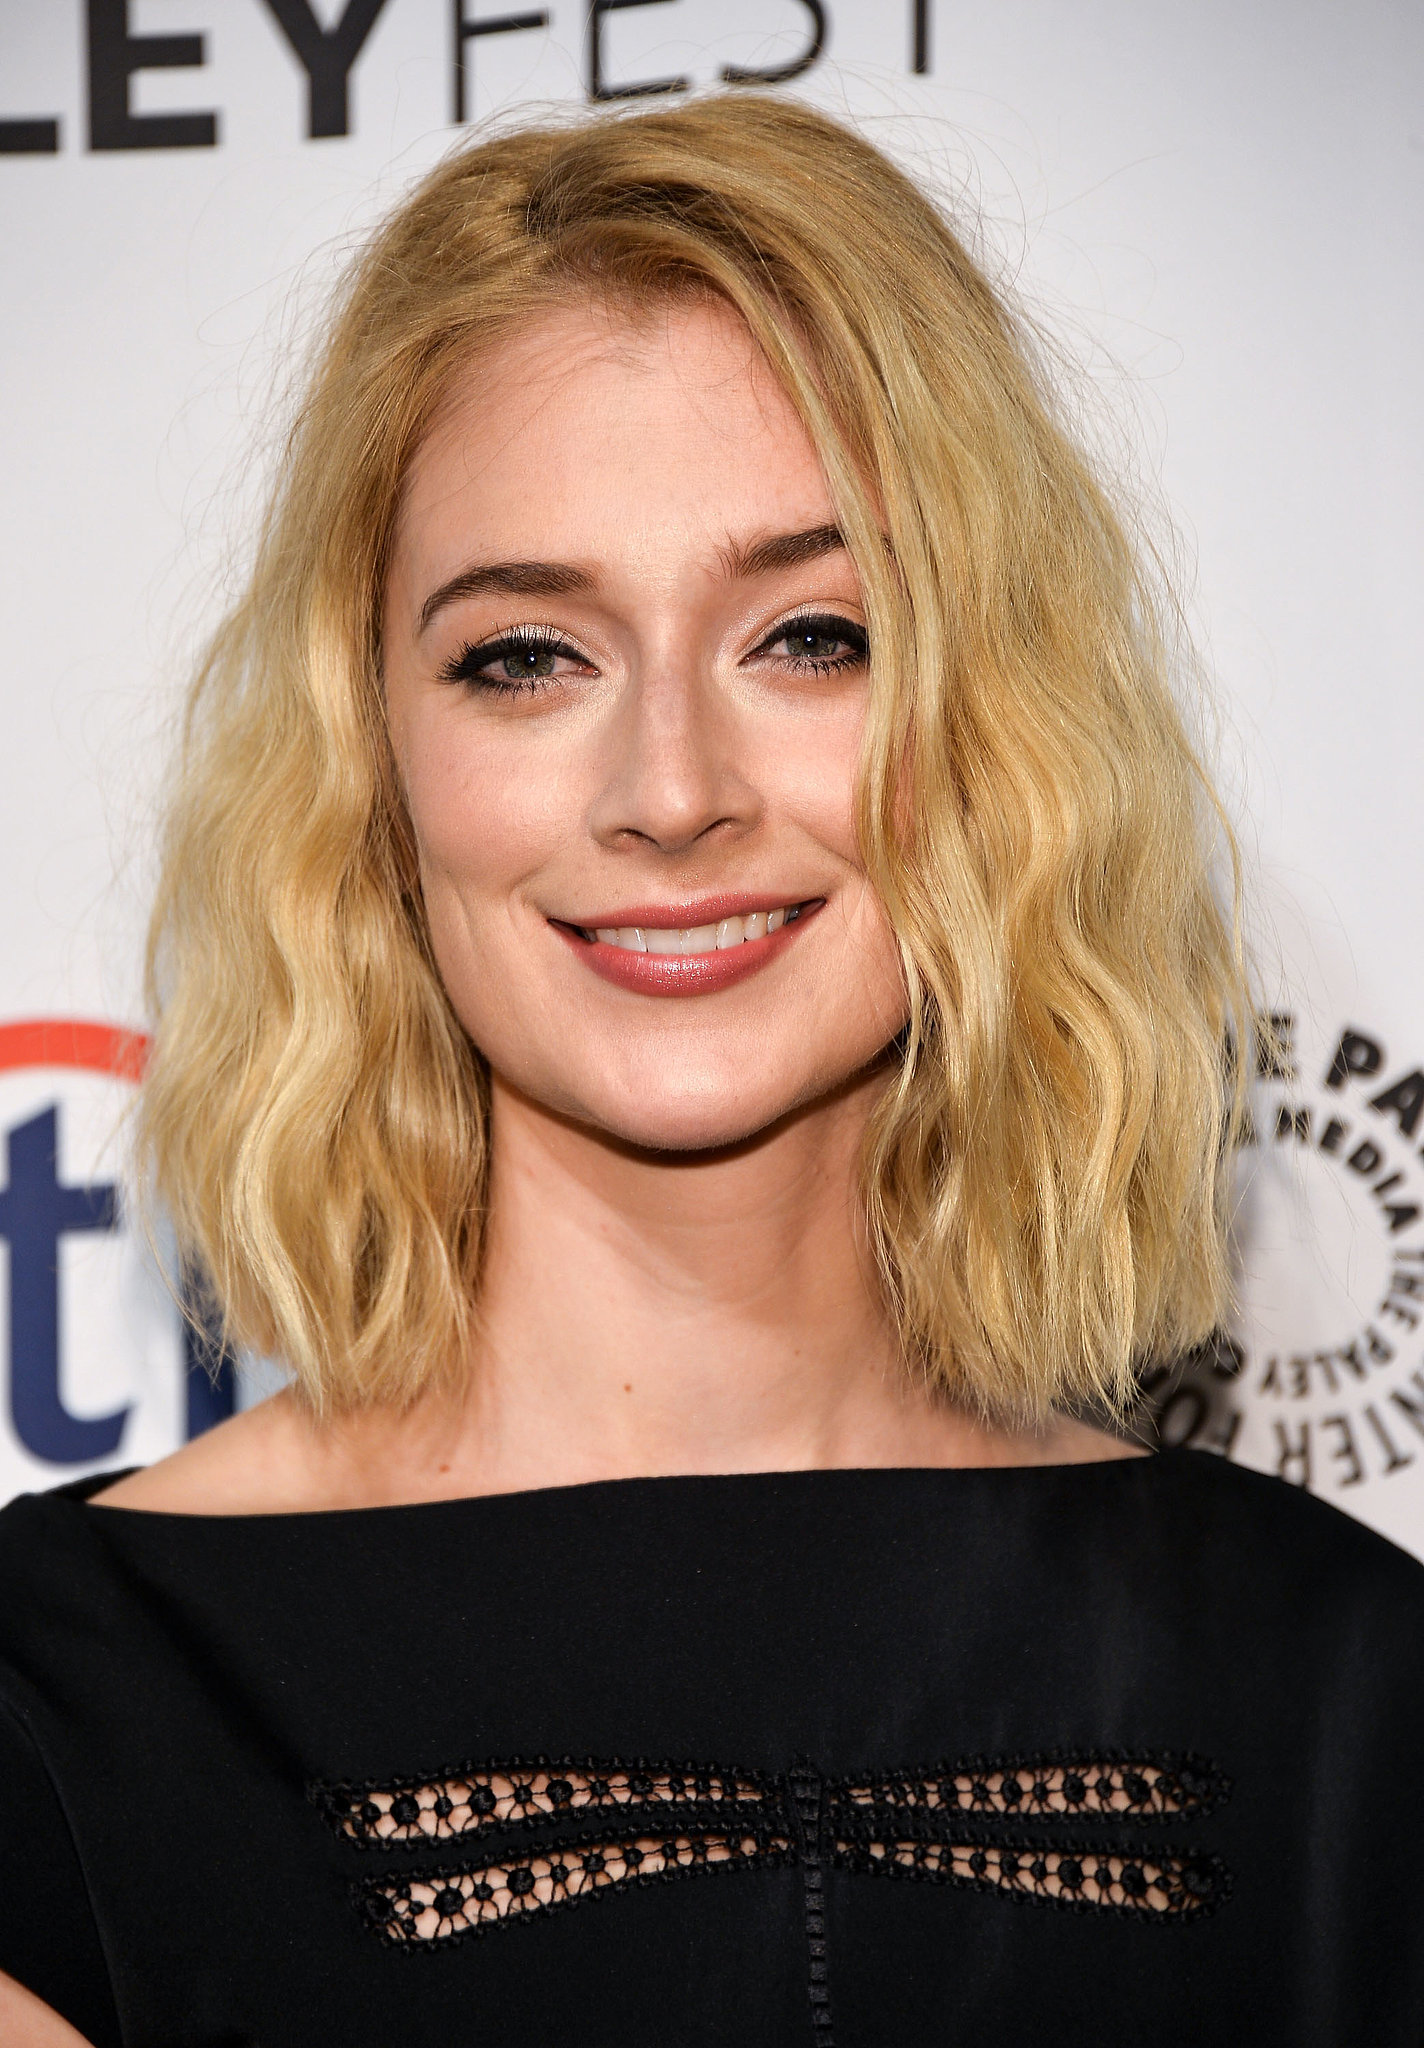 caitlin fitzgerald biocaitlin fitzgerald husband, caitlin fitzgerald listal, caitlin fitzgerald foto, caitlin fitzgerald height and weight, caitlin fitzgerald imdb, caitlin fitzgerald twitter, caitlin fitzgerald, caitlin fitzgerald instagram, caitlin fitzgerald birthday, caitlin fitzgerald interview, caitlin fitzgerald boyfriend, caitlin fitzgerald bio, caitlin fitzgerald dating, caitlin fitzgerald nudography, caitlin fitzgerald pictures